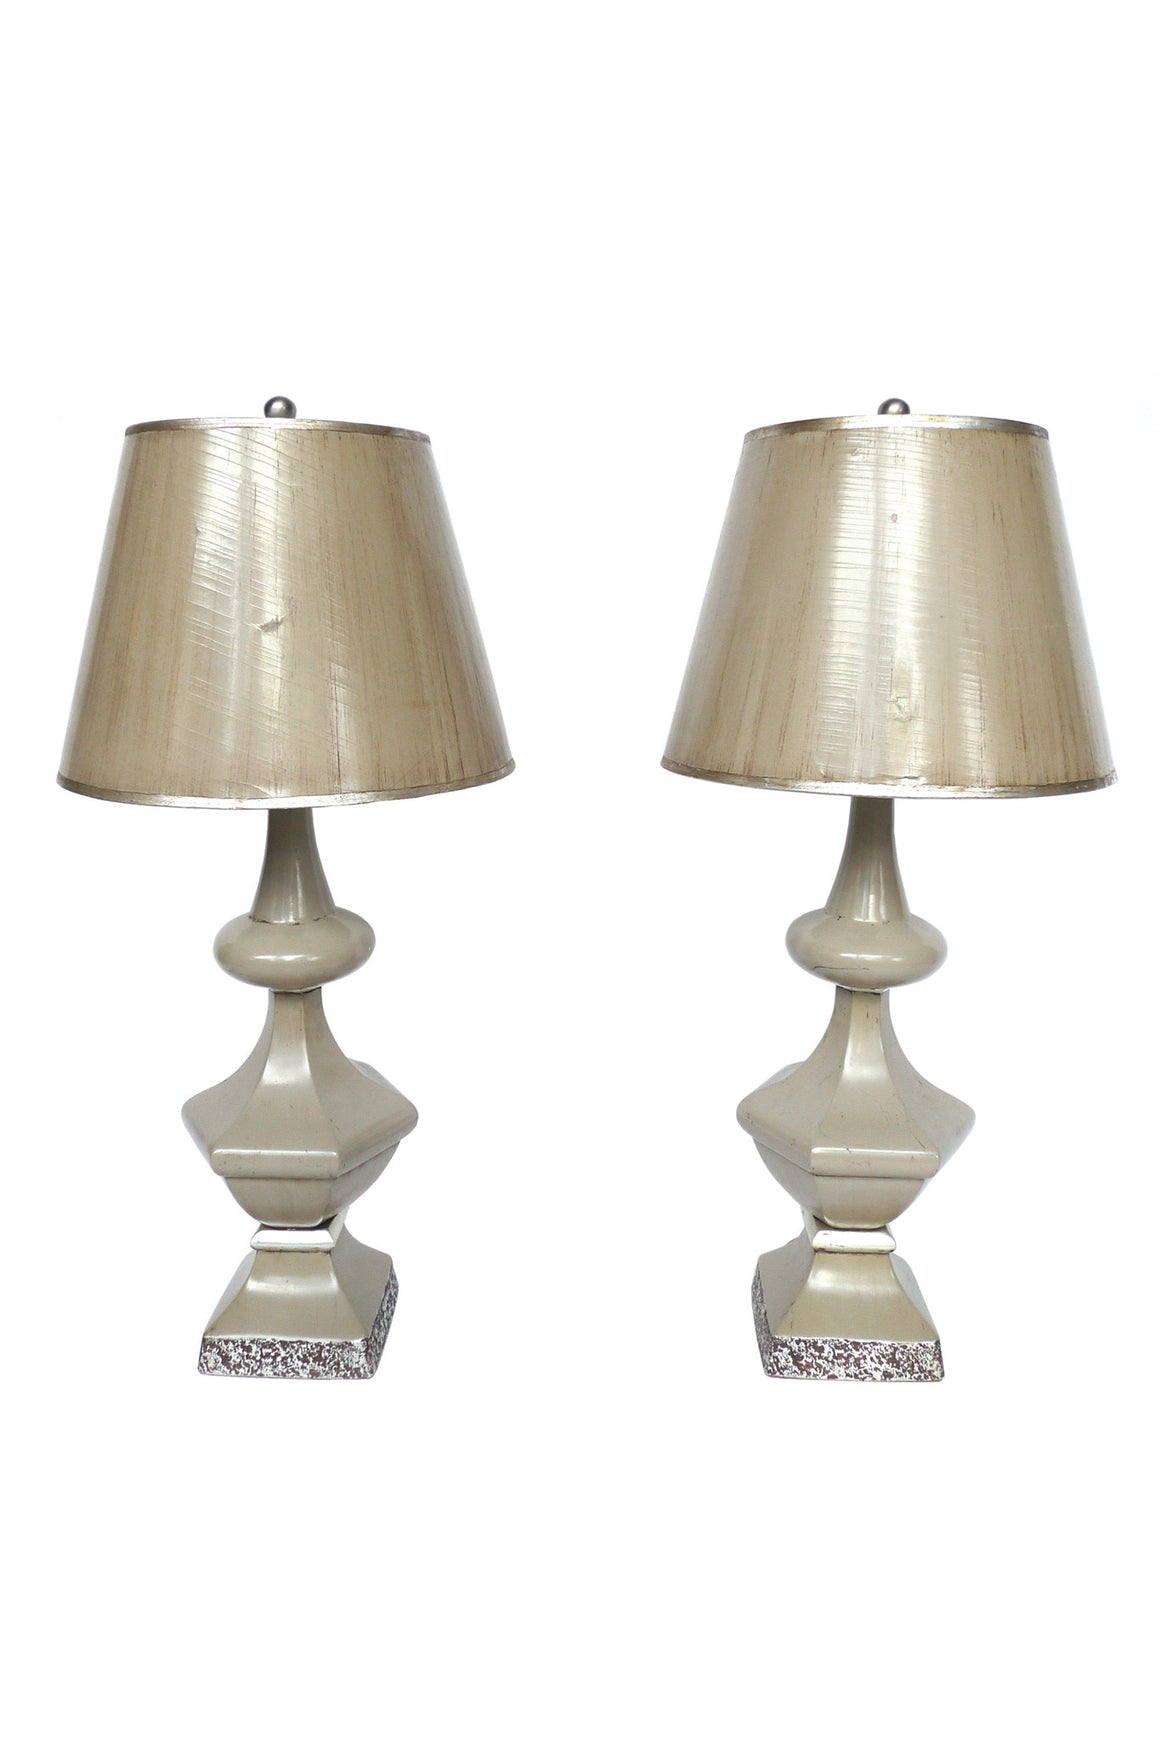 Pair of 1950s Dorothy Draper Table Lamps - ON SALE